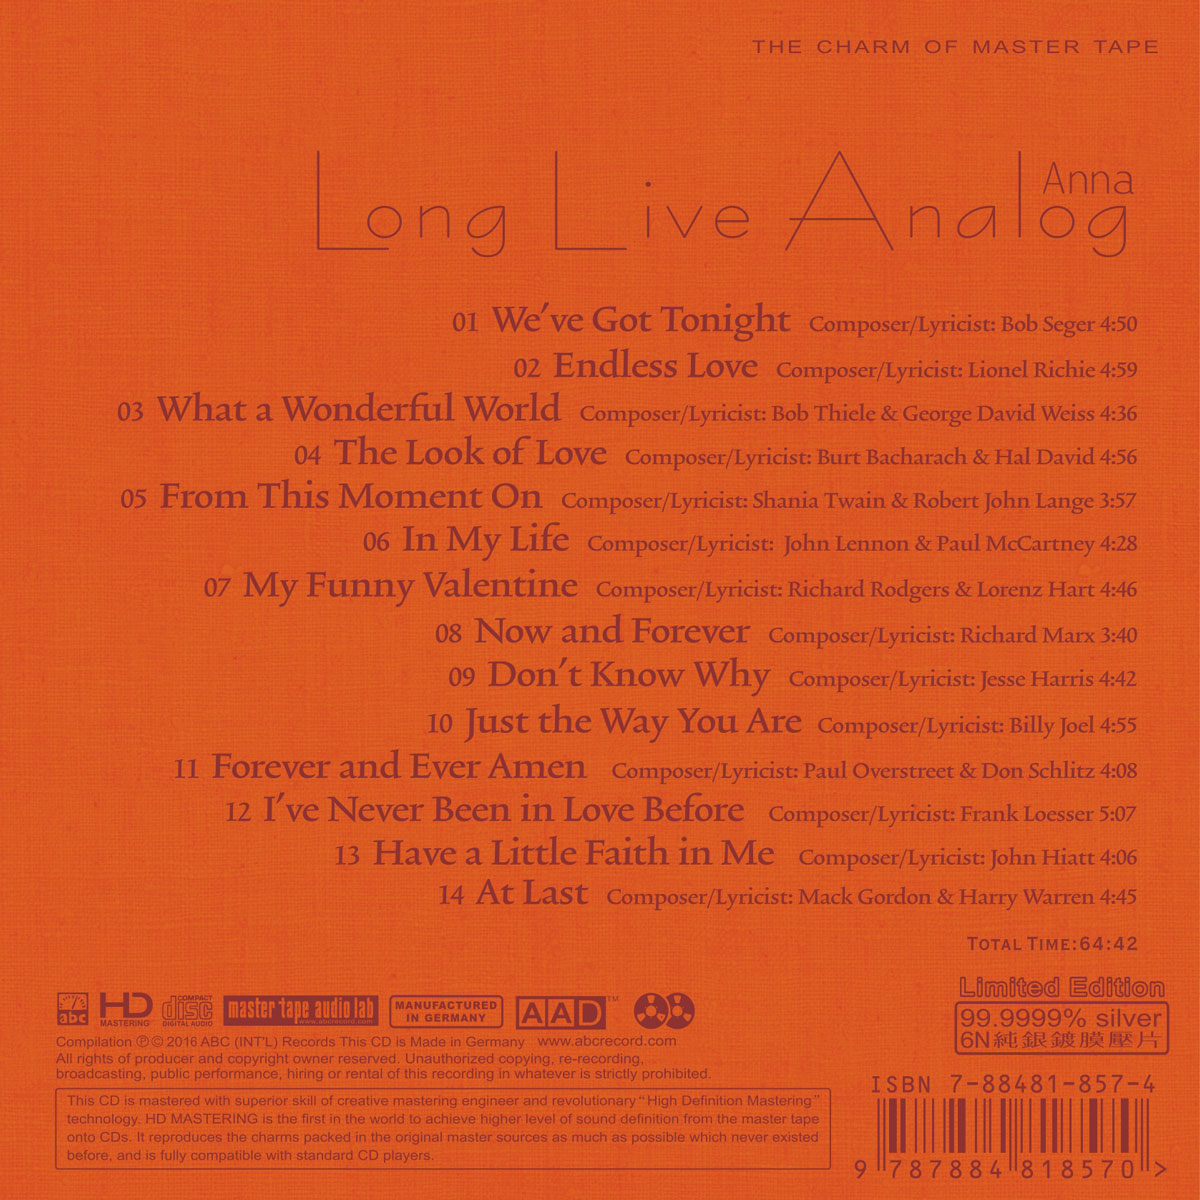 Long Live Analog – Anna: My Funny Valentine